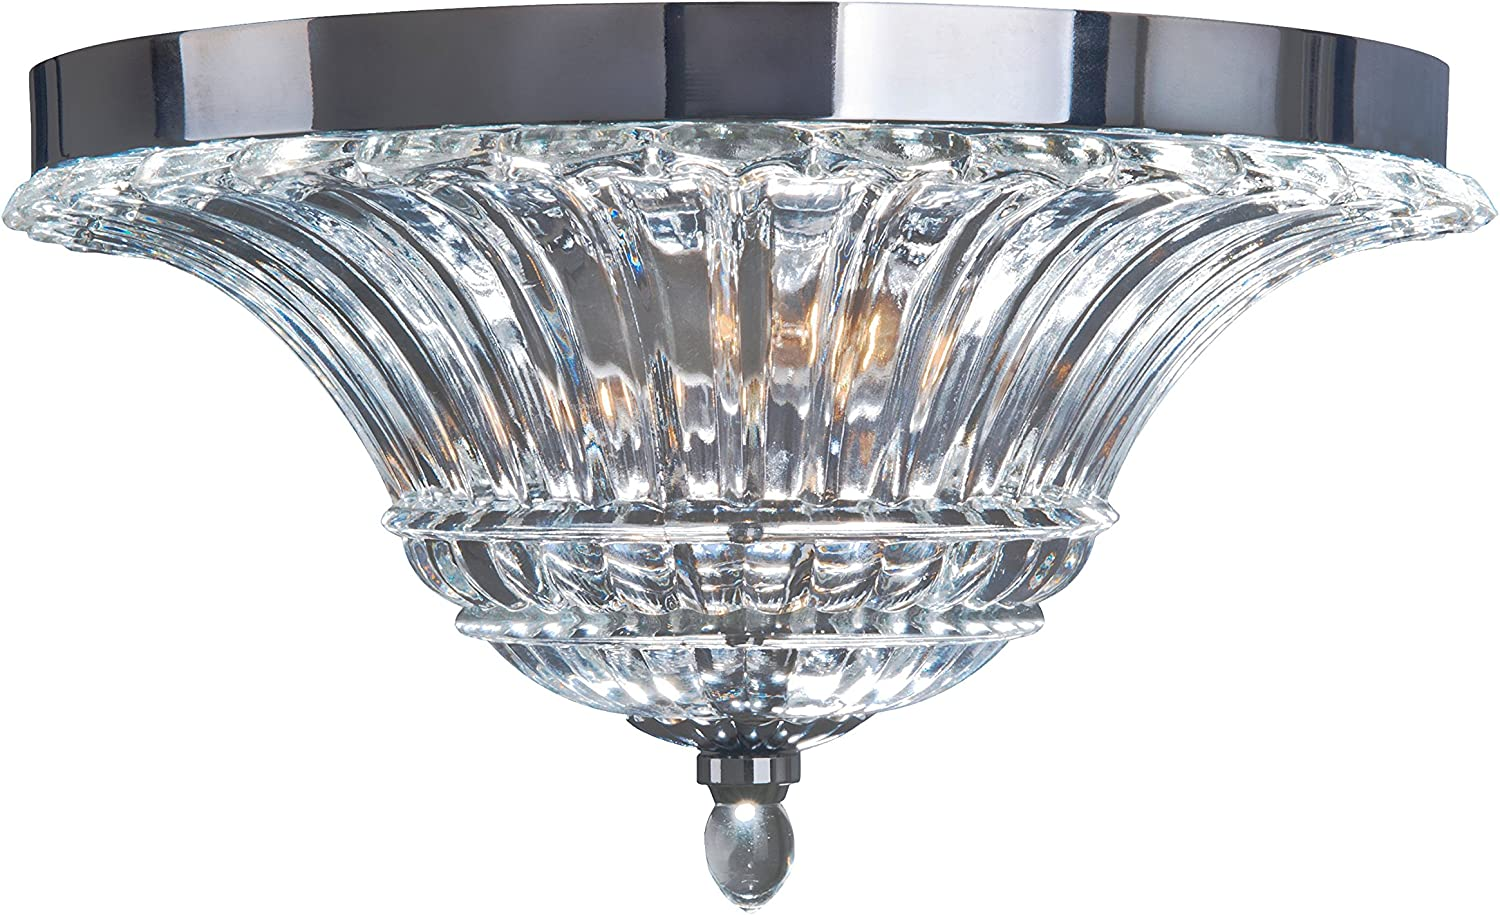 Elegant Designs Fm1002 Chr Ceiling Glacier Petal 2 Light Glass Flushmount Chrome Amazon Com